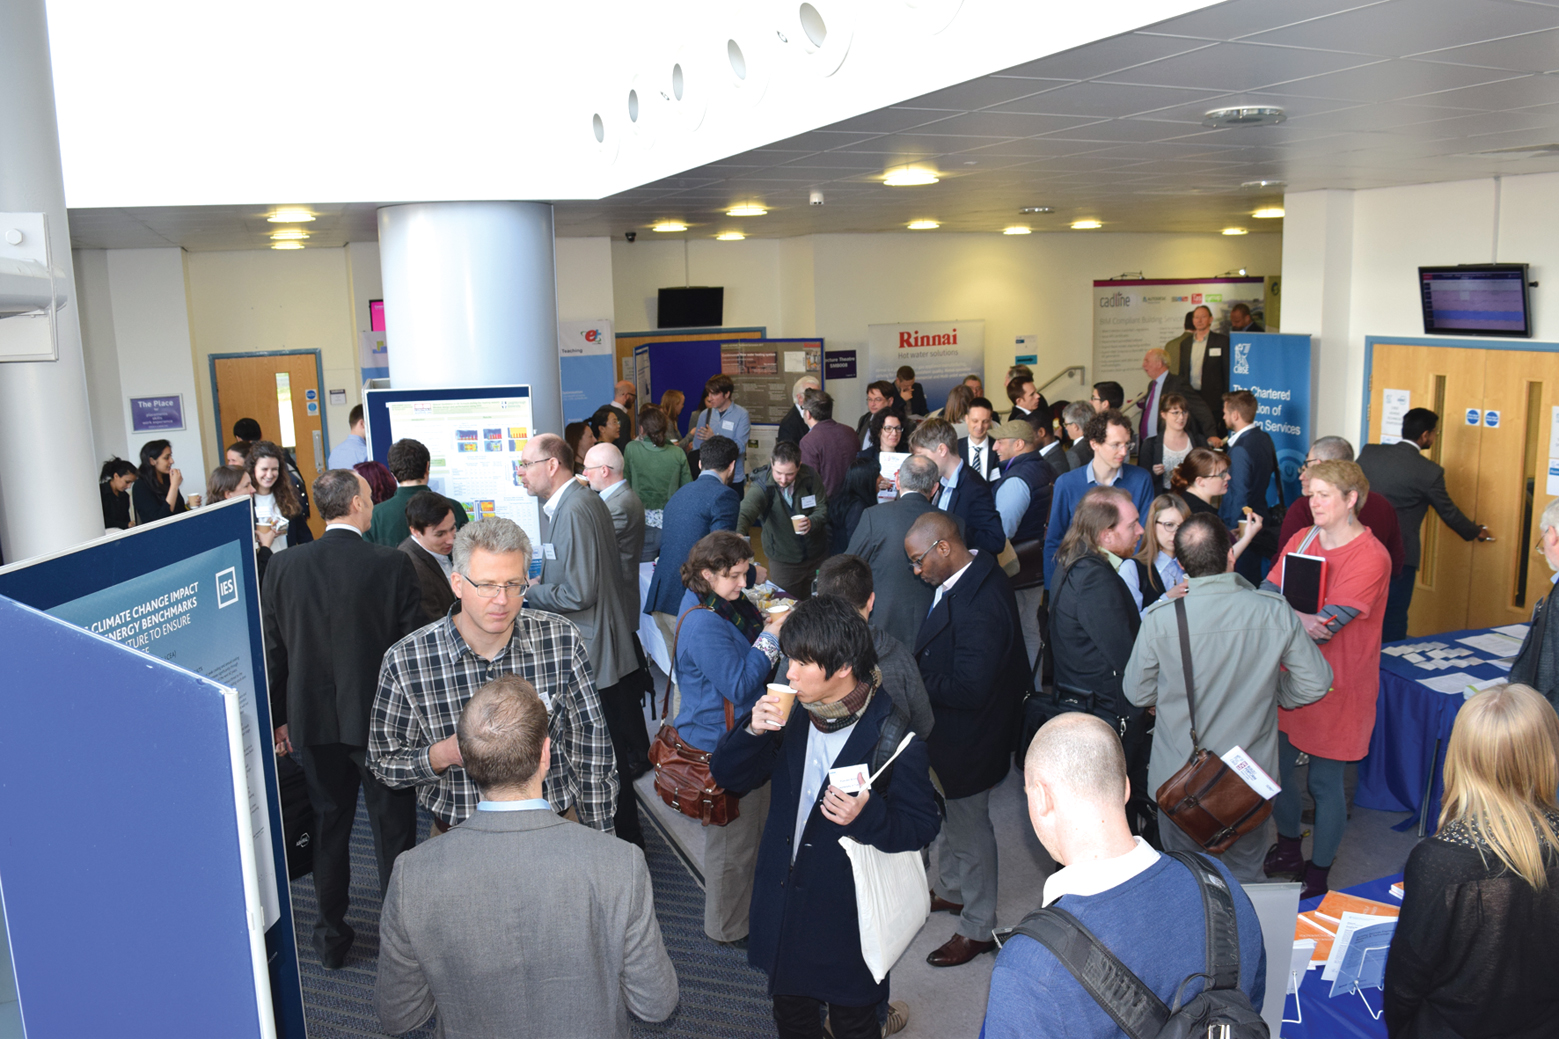 CIBSE Journal May 2017 technical symposium